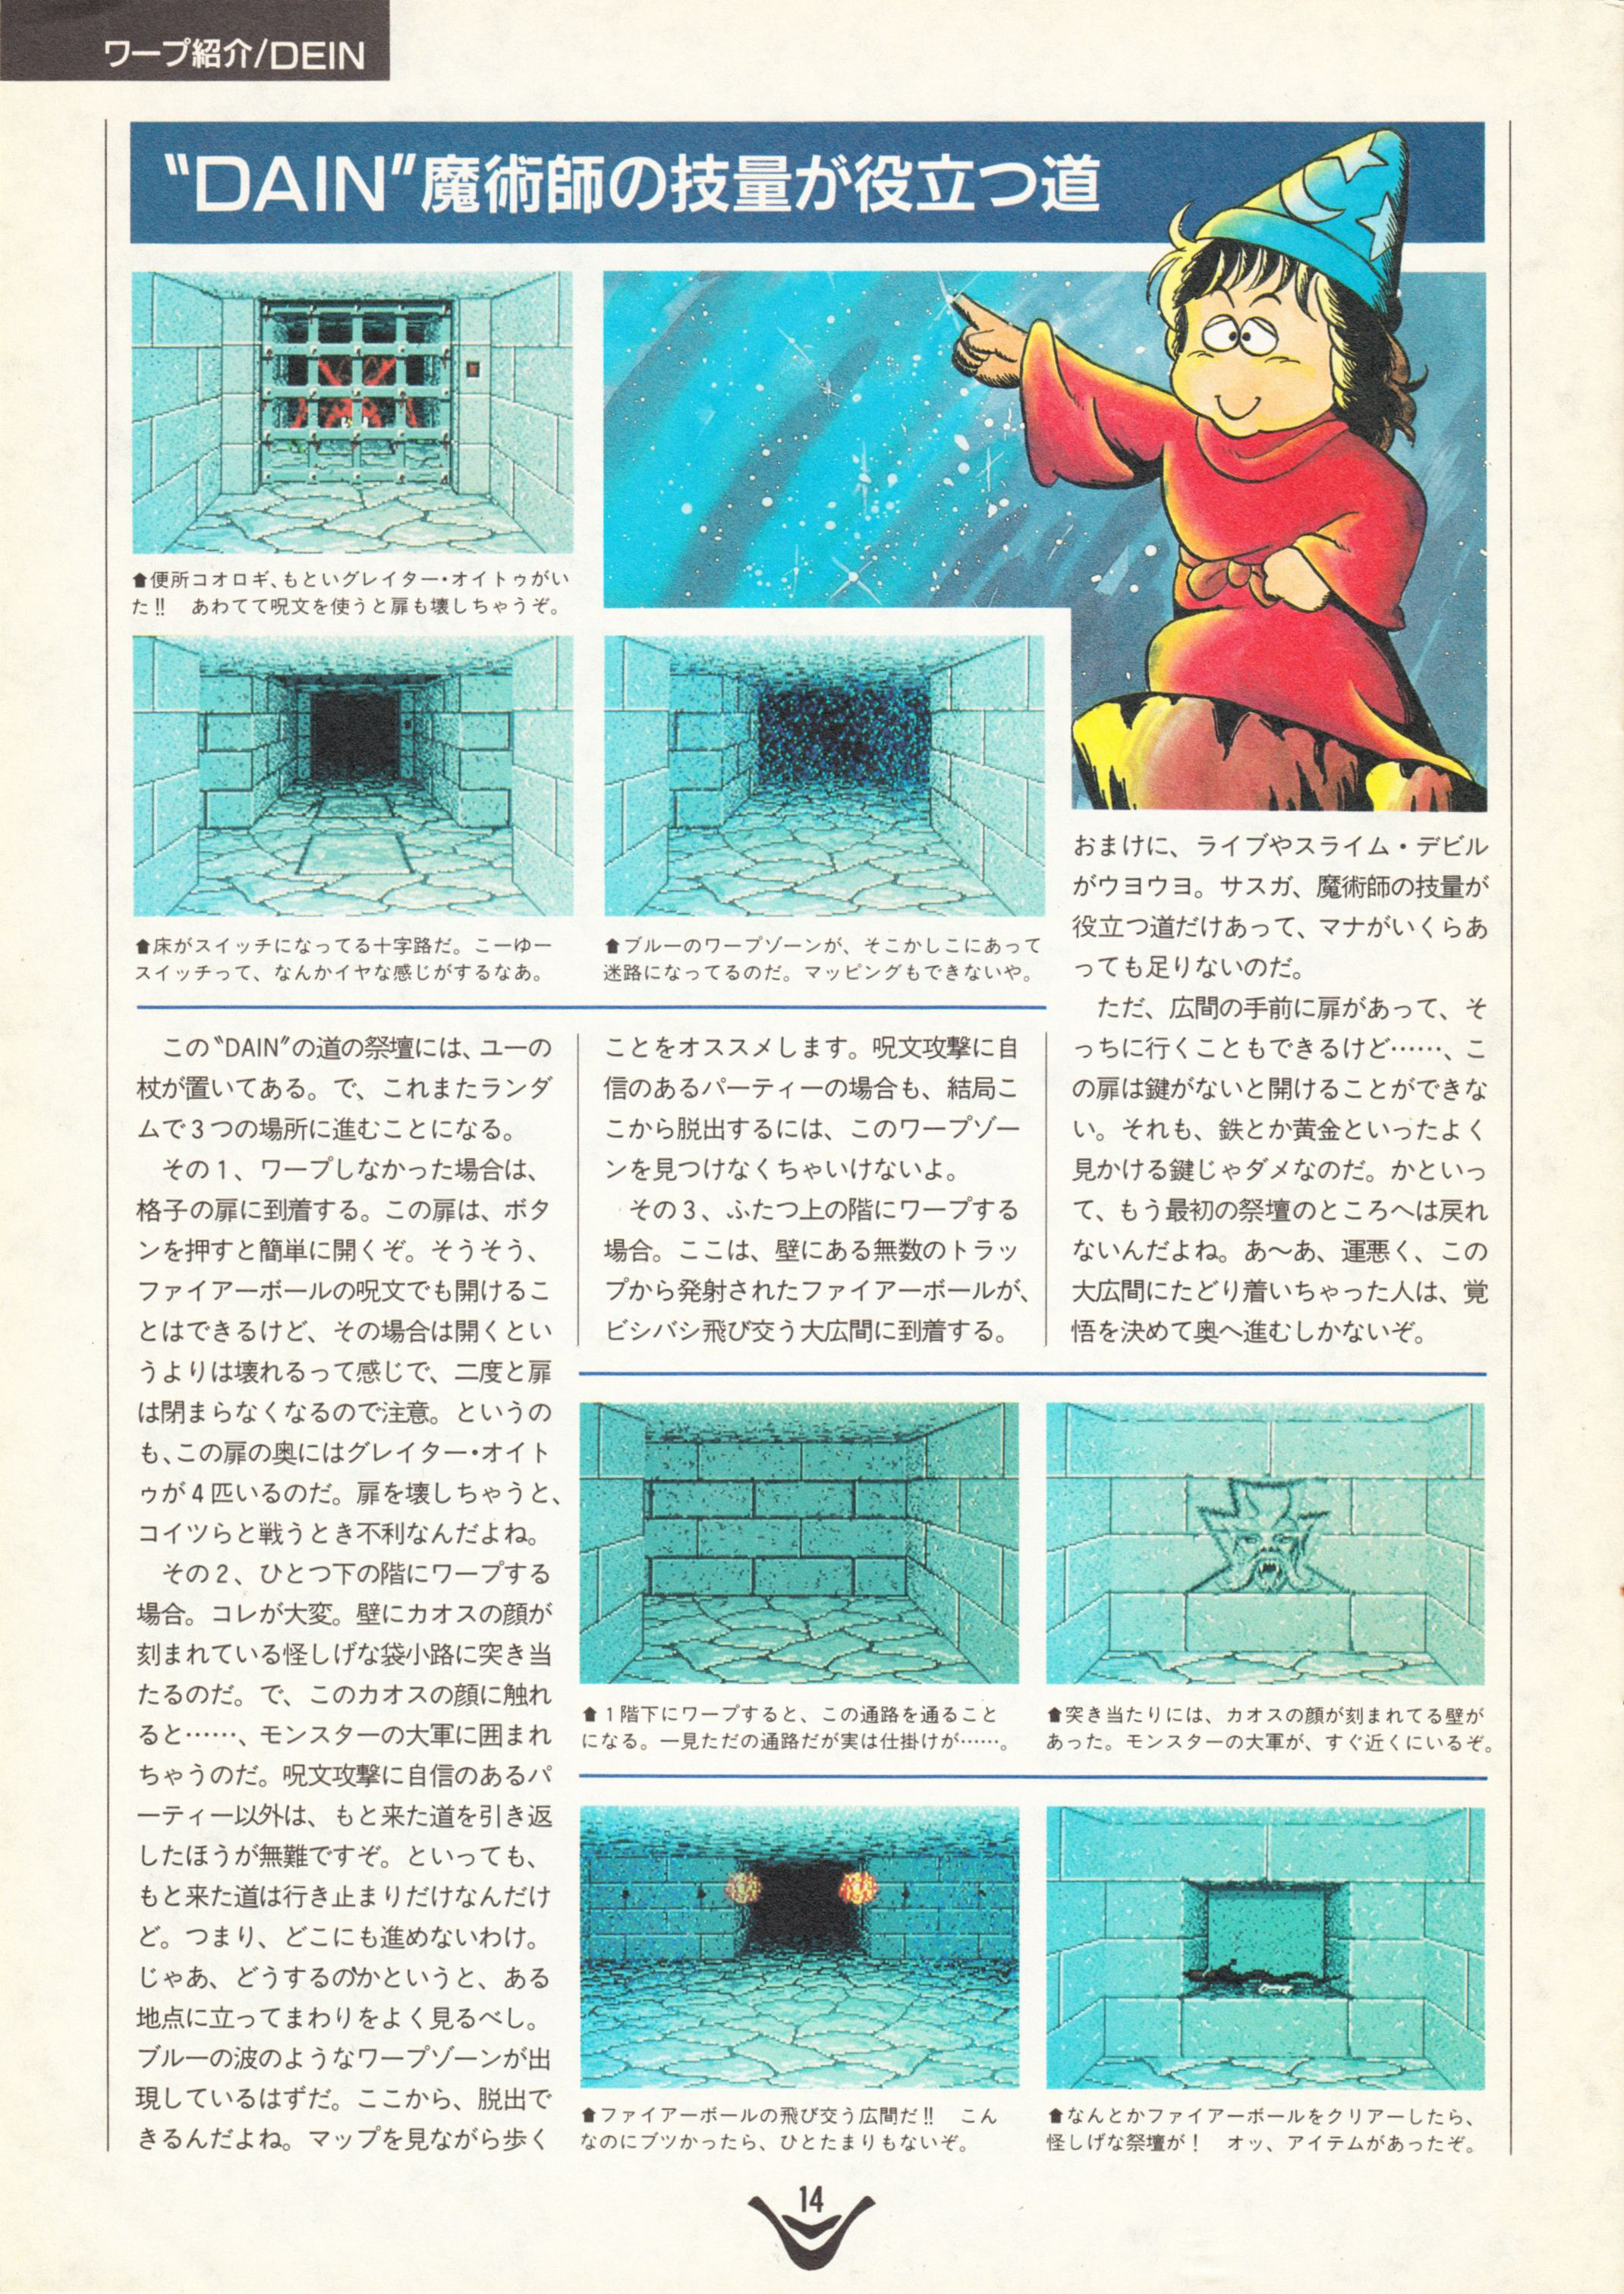 Special Supplement - Chaos Strikes Back Guide published in Japanese magazine 'Login', Vol 10 No 3 01 February 1991, Page 14